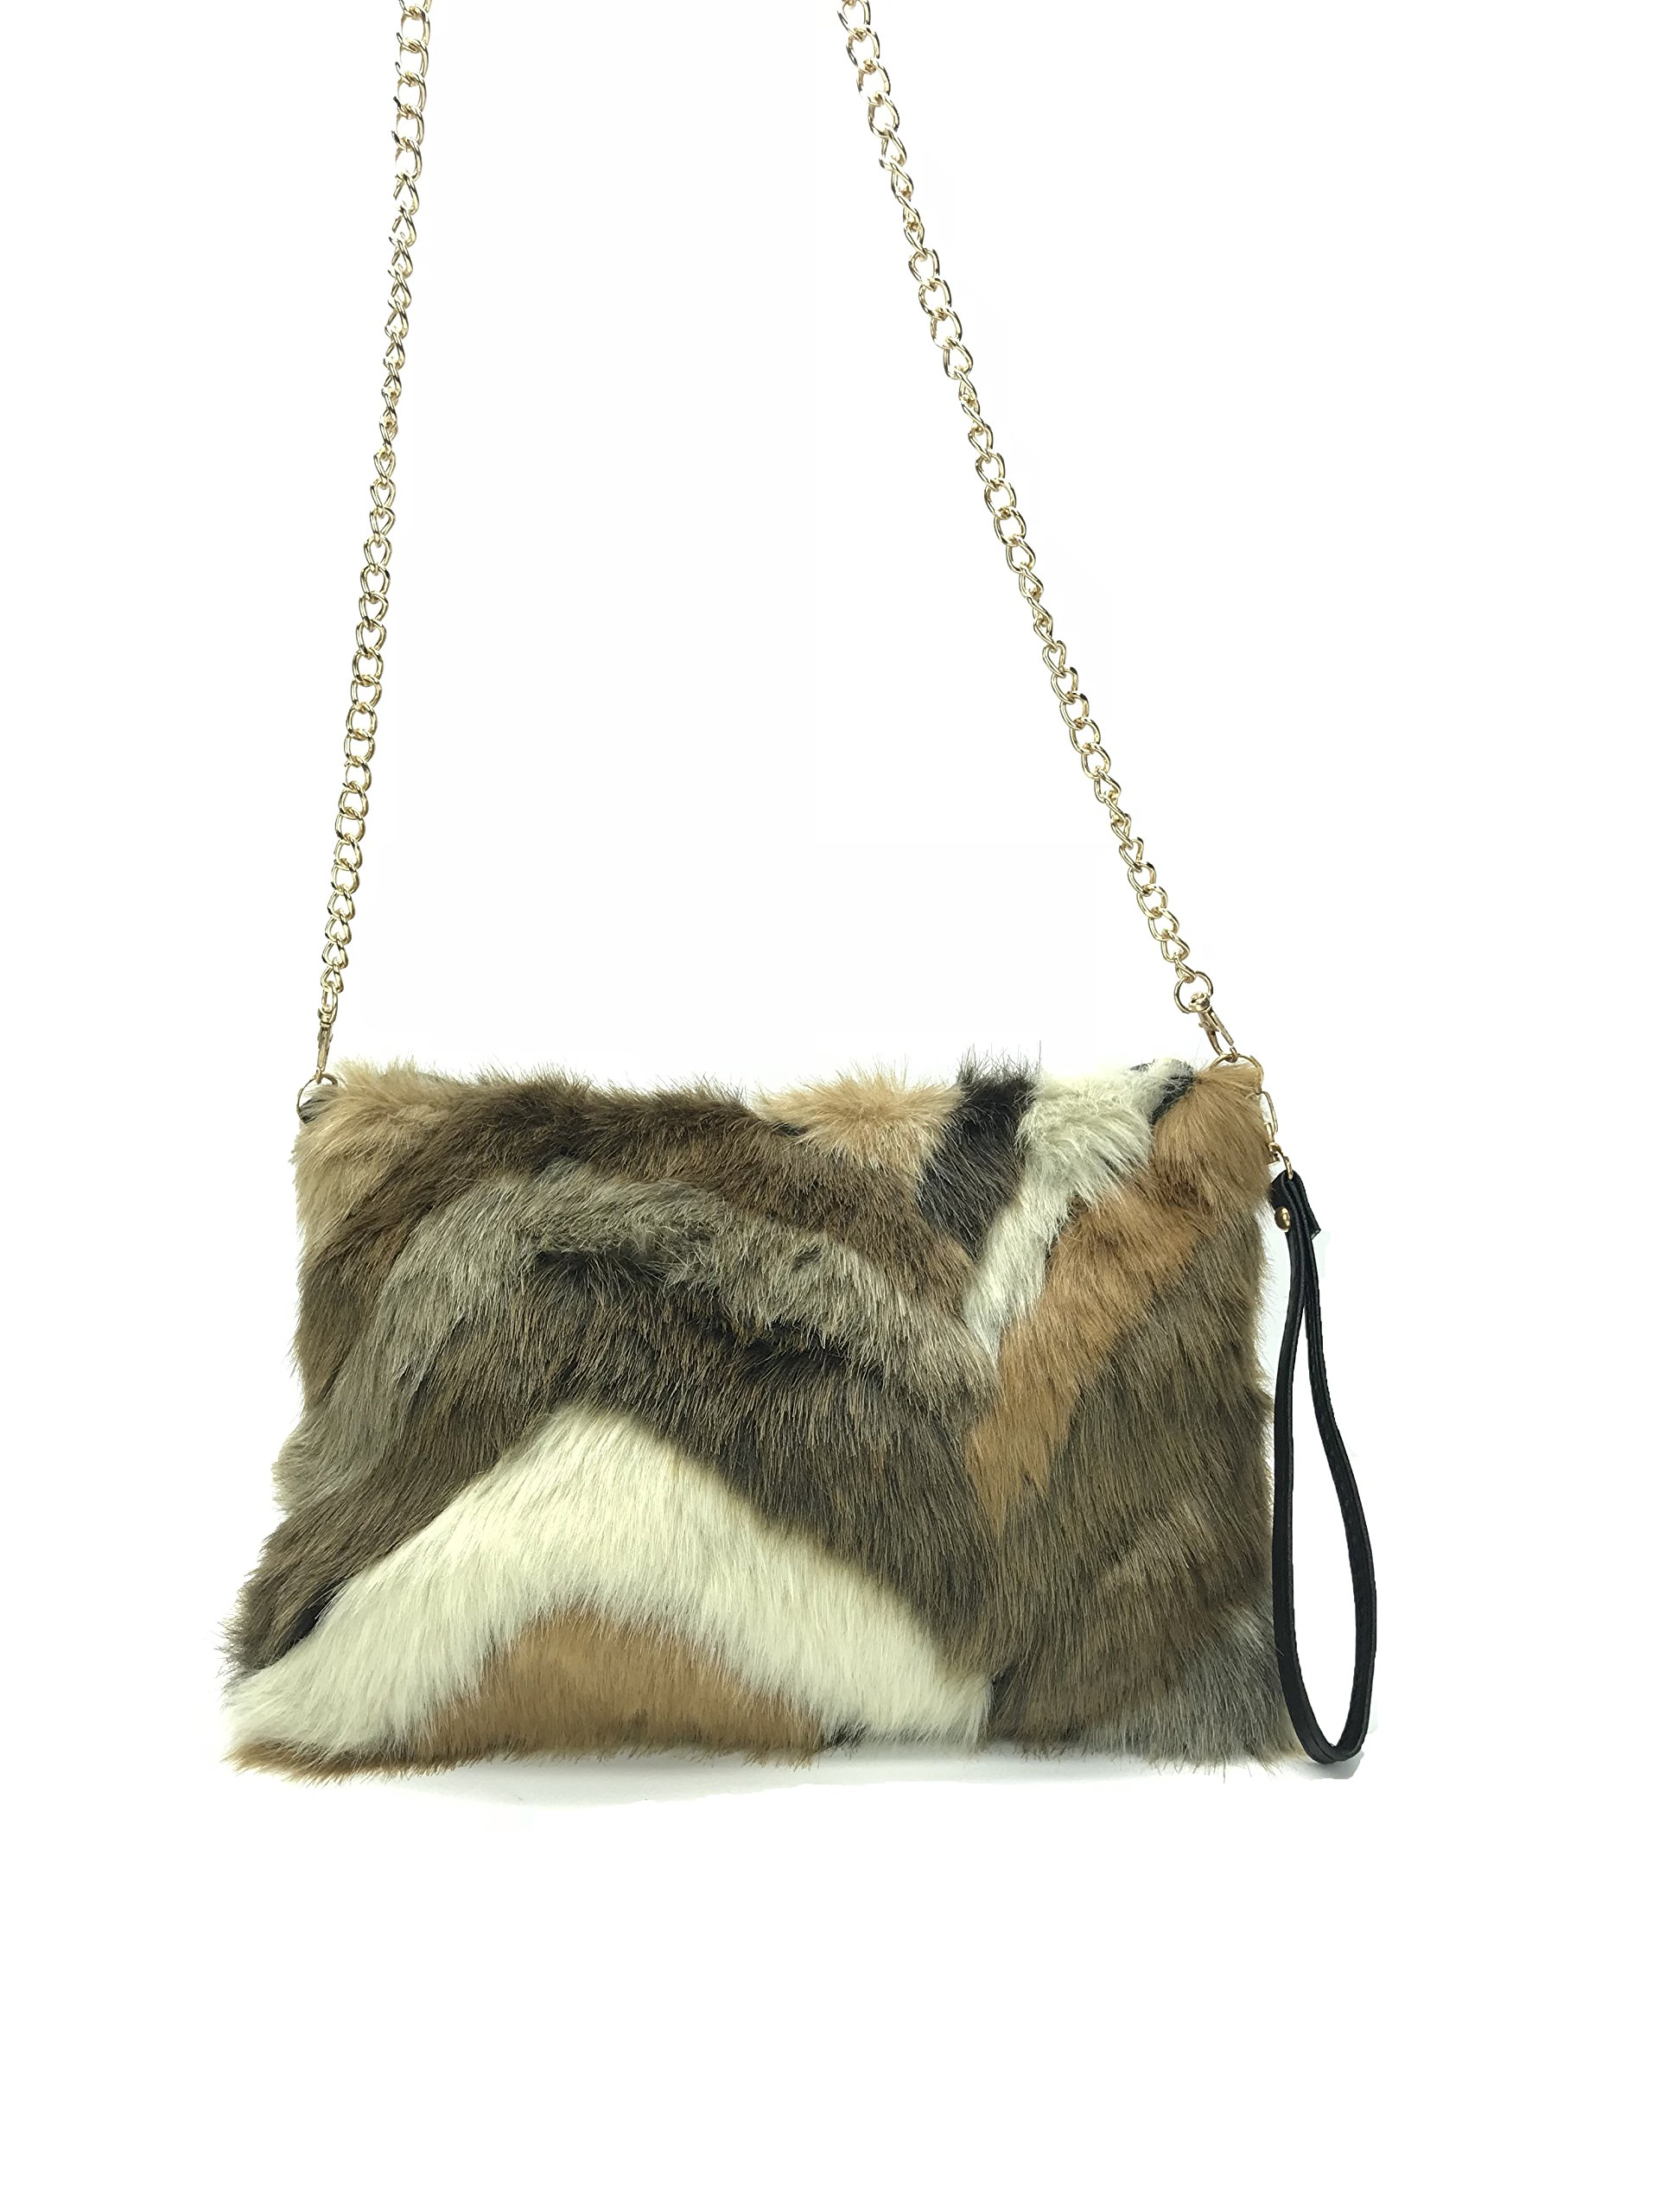 GoodCape OLIVIA Series faux fur ladies sling bag with Gold chain in chevron style